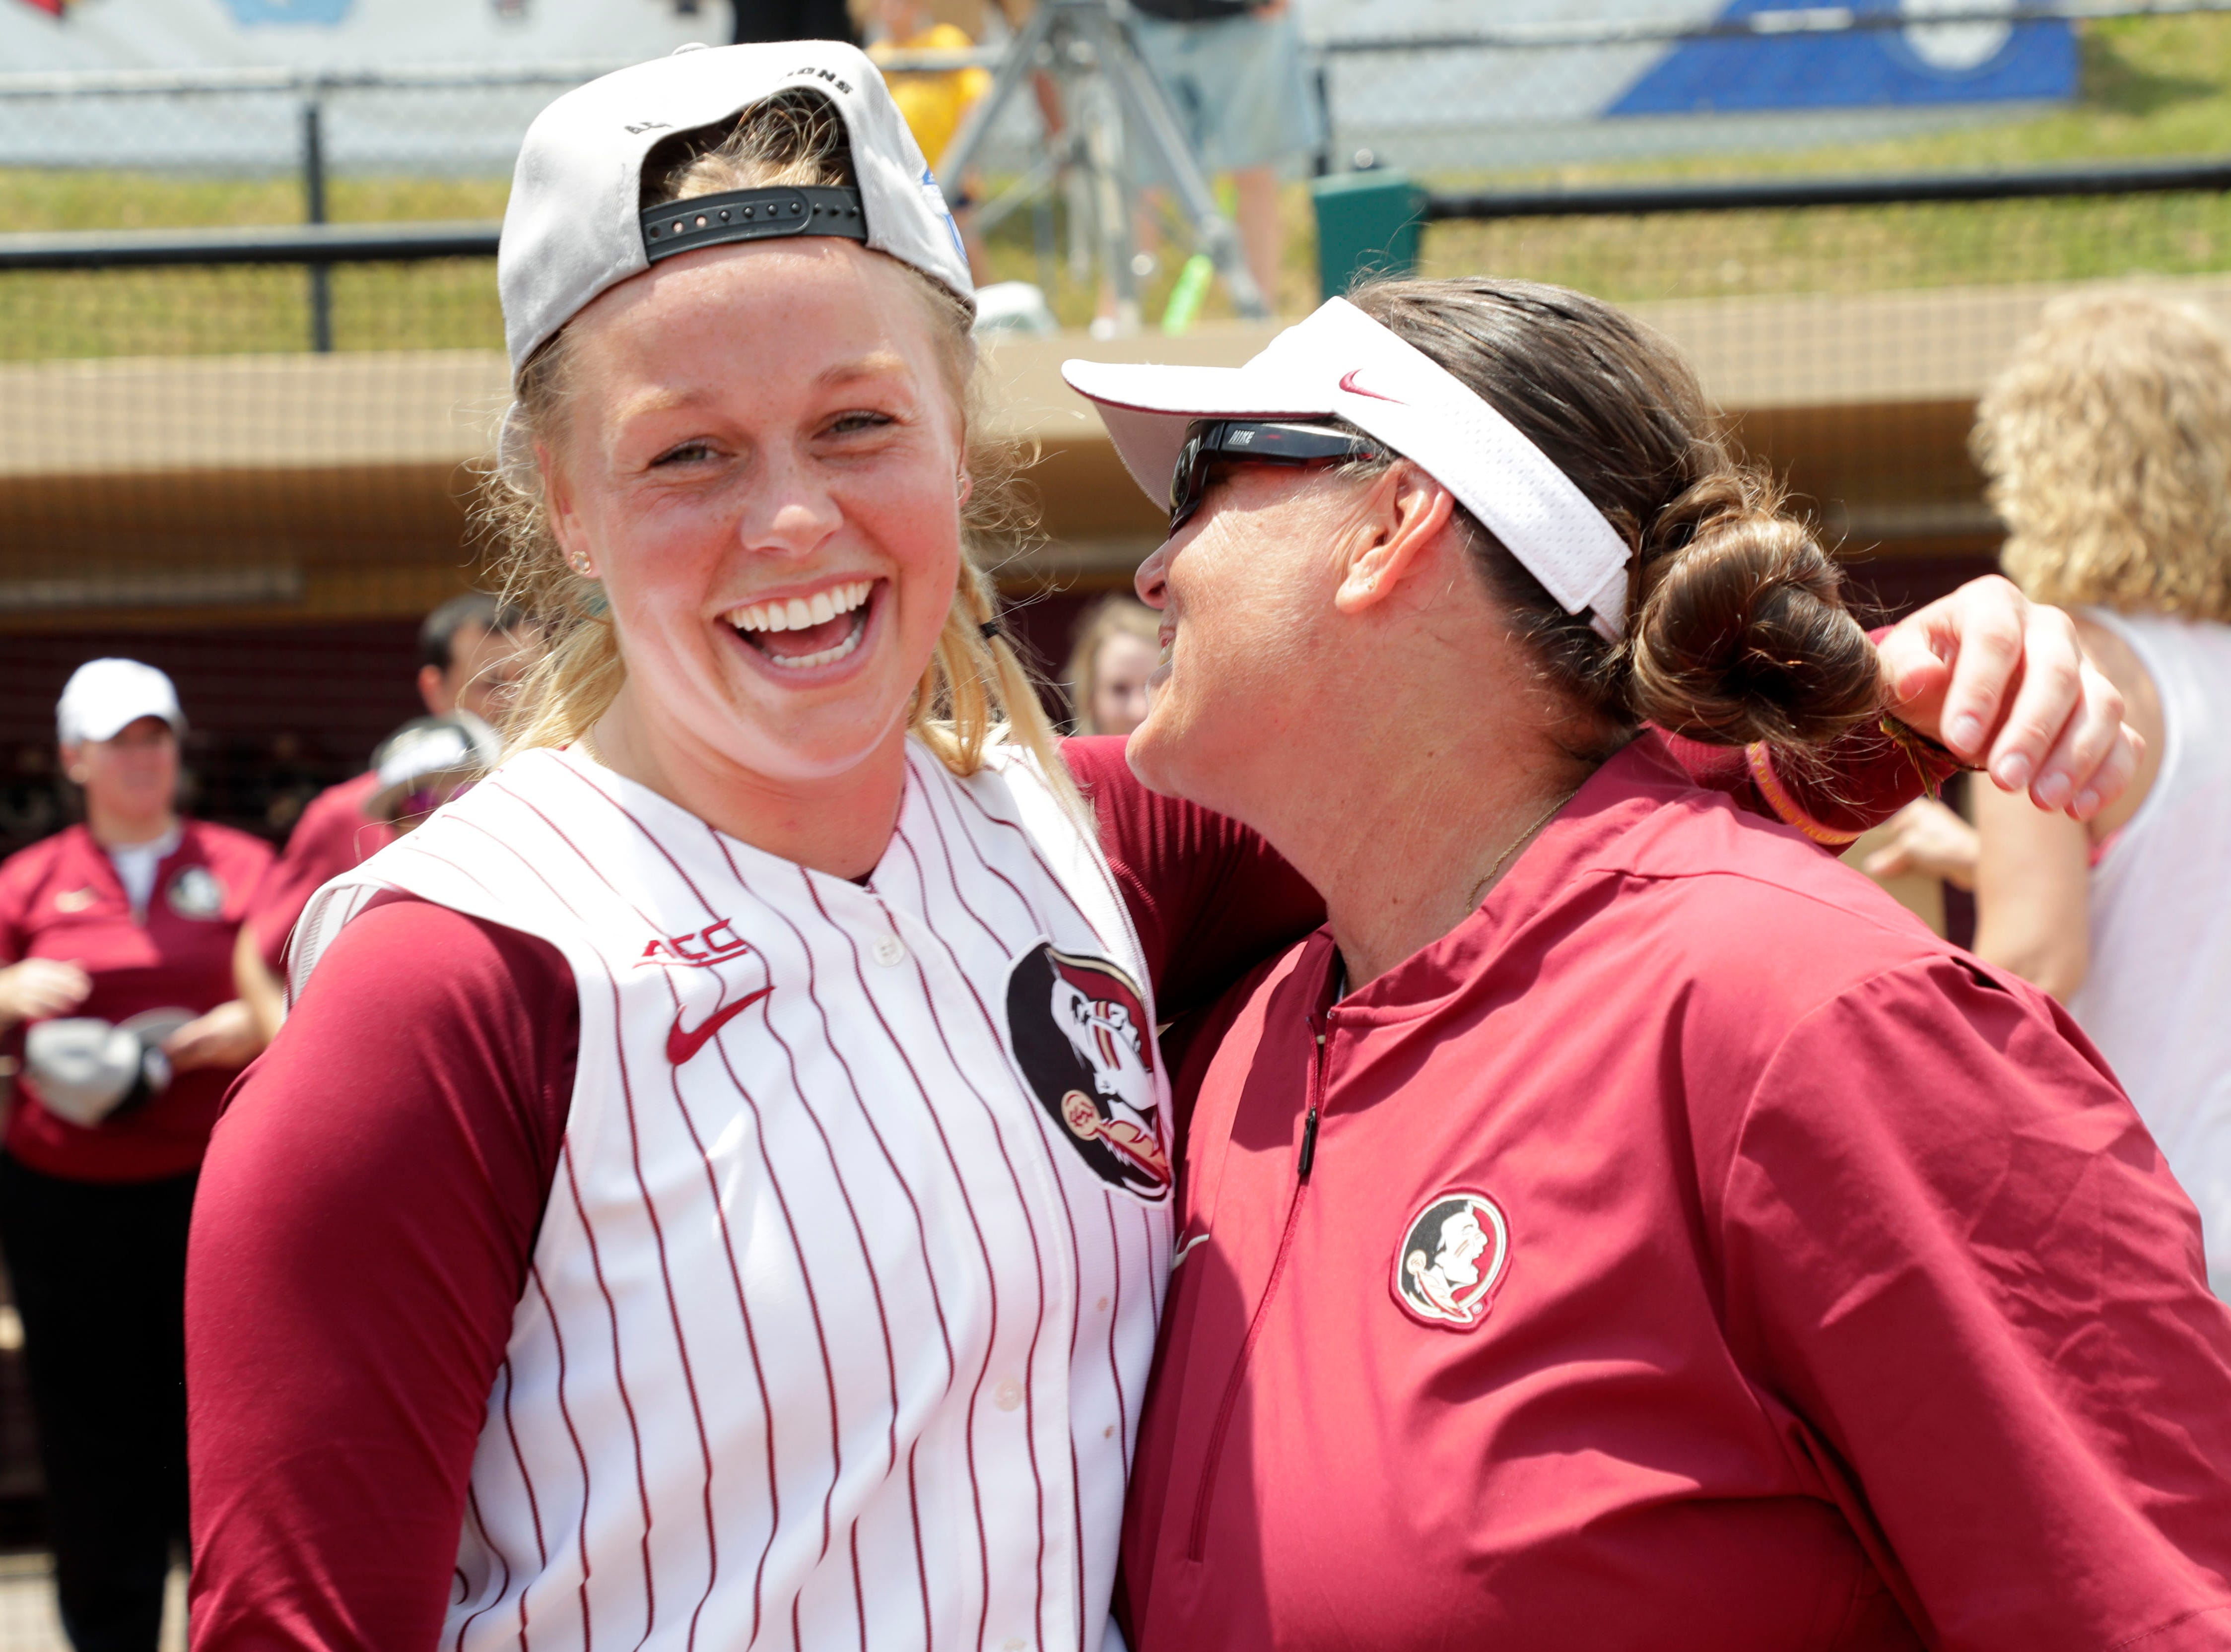 Florida State Seminoles starting pitcher/relief pitcher Meghan King (48) and head coach Lonni Alameda  hug after a hard fought victory. The Florida State Seminoles celebrate their victory over the UNC Tar Heels for the ACC Softball Championship title Saturday, May 11, 2019.